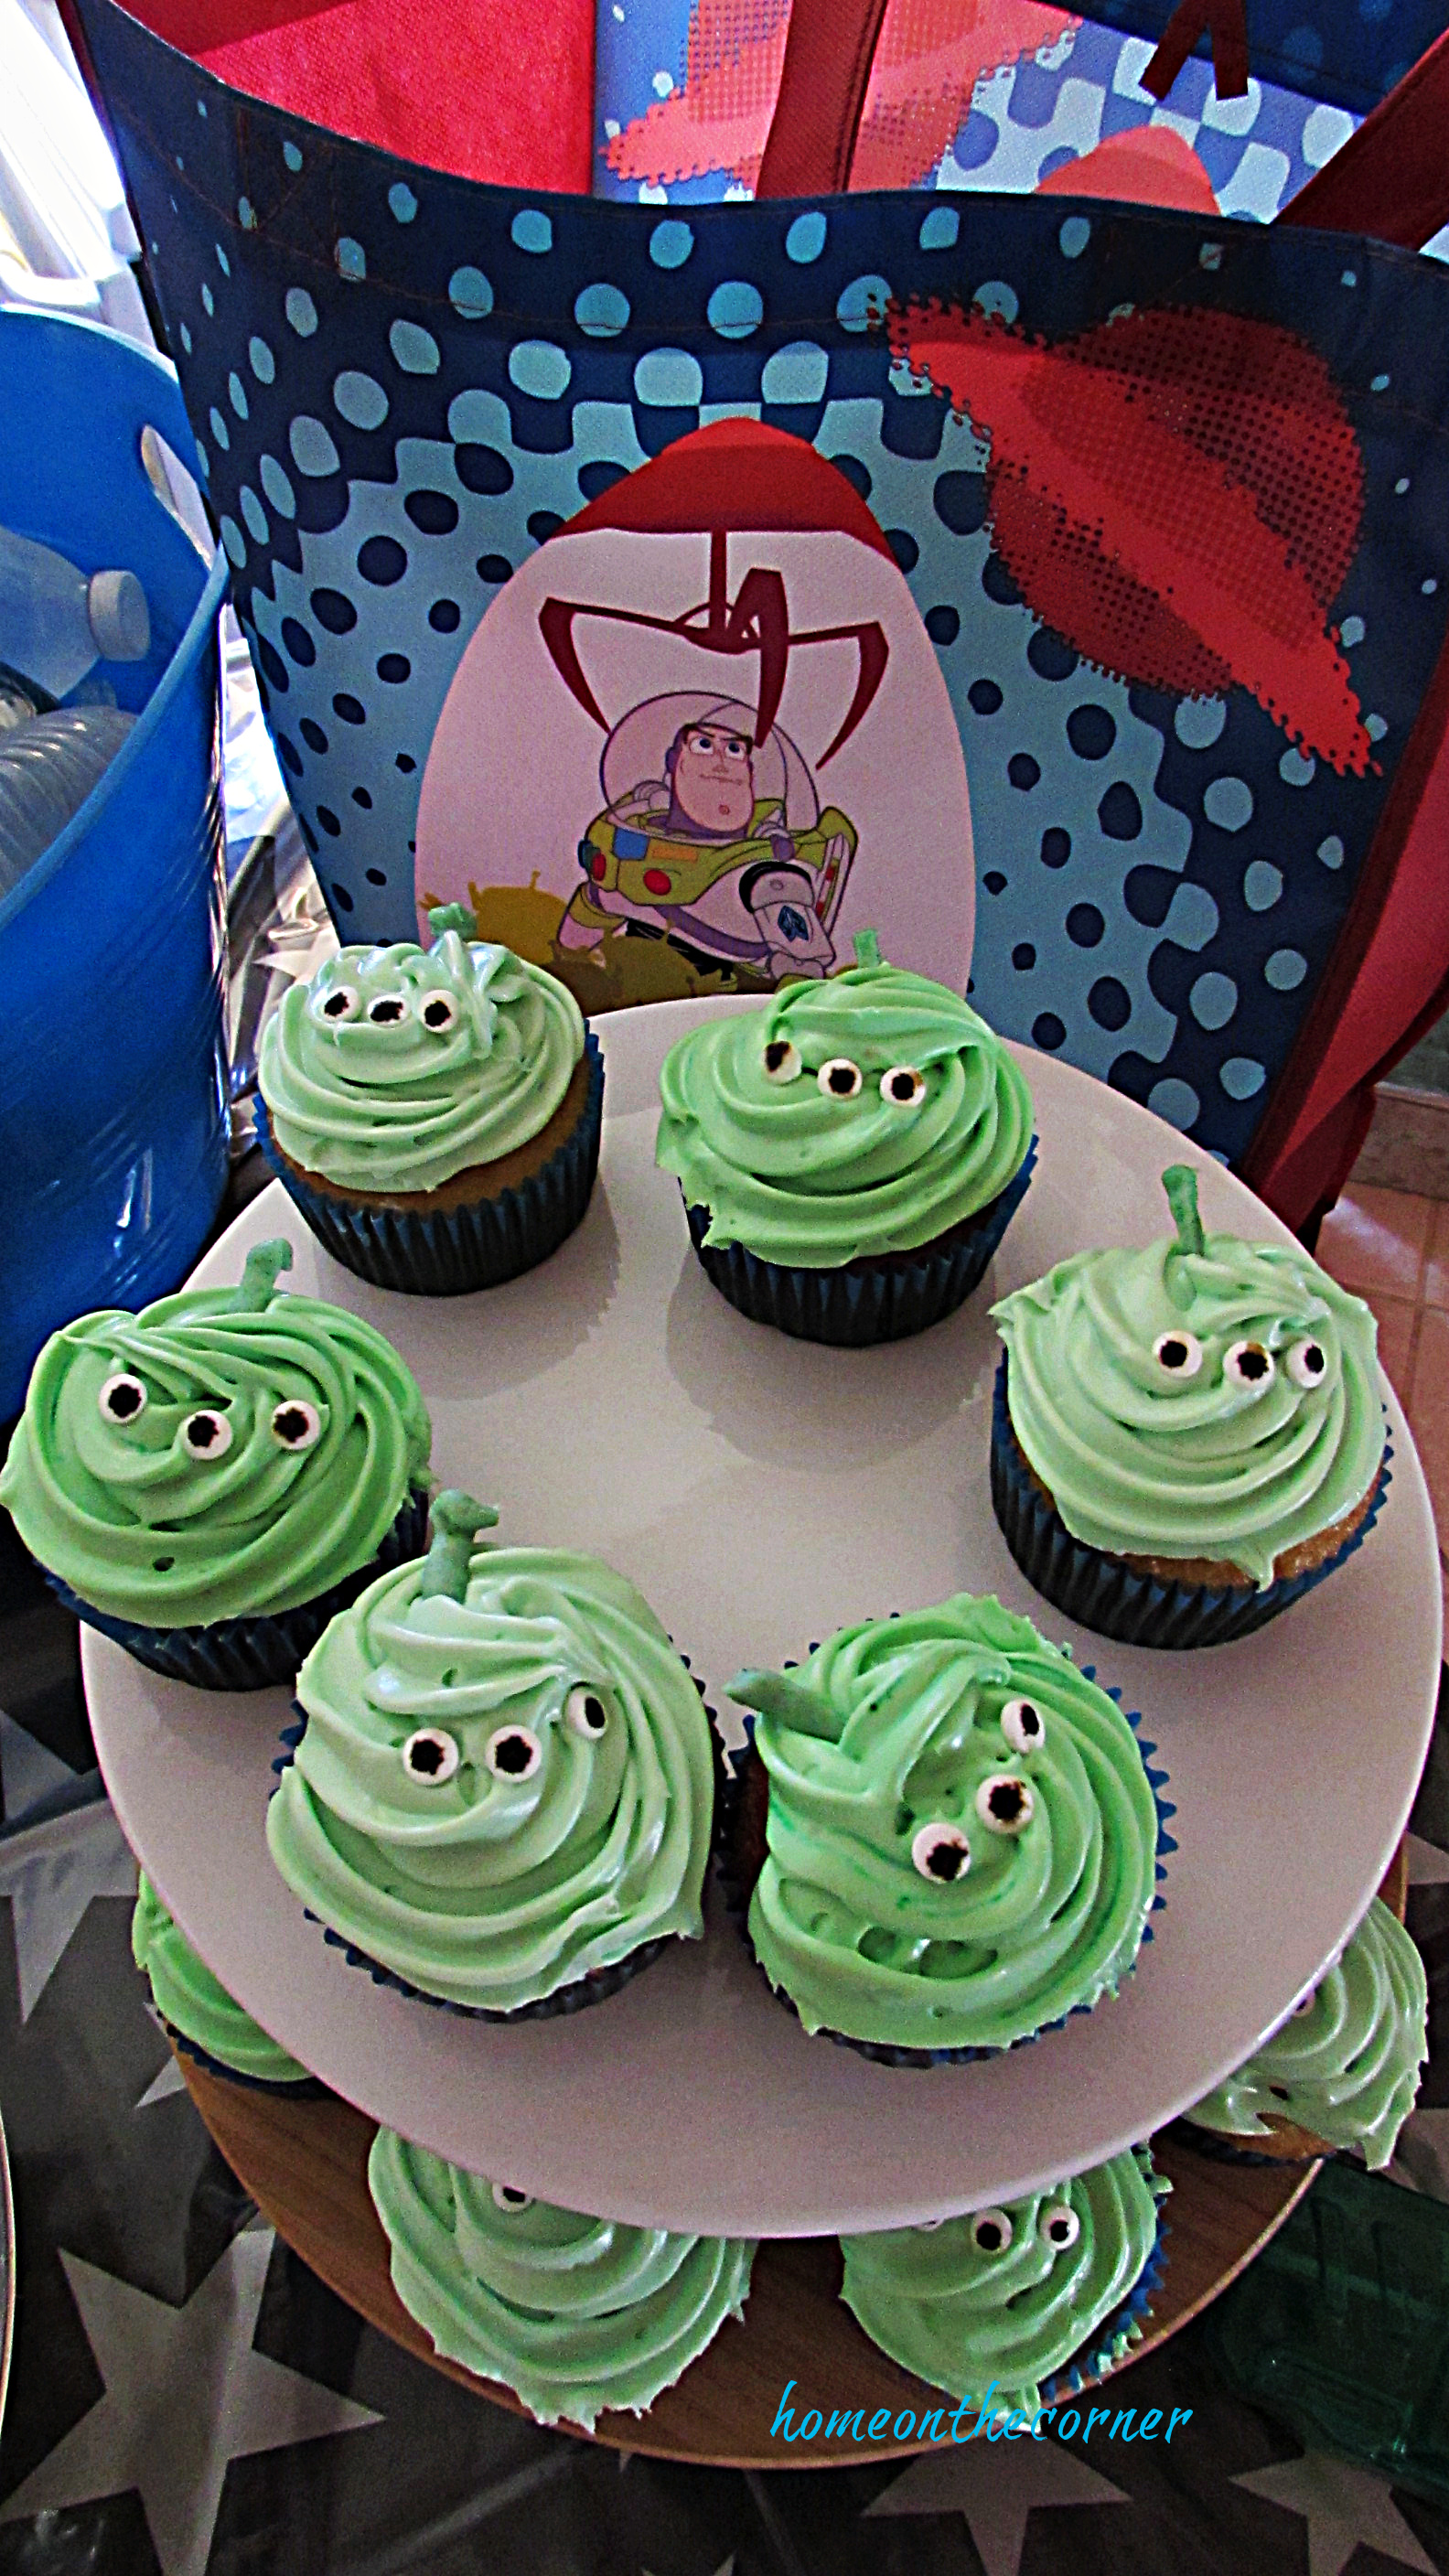 Disneyland Tomorrowland Green Martian Cupcakes